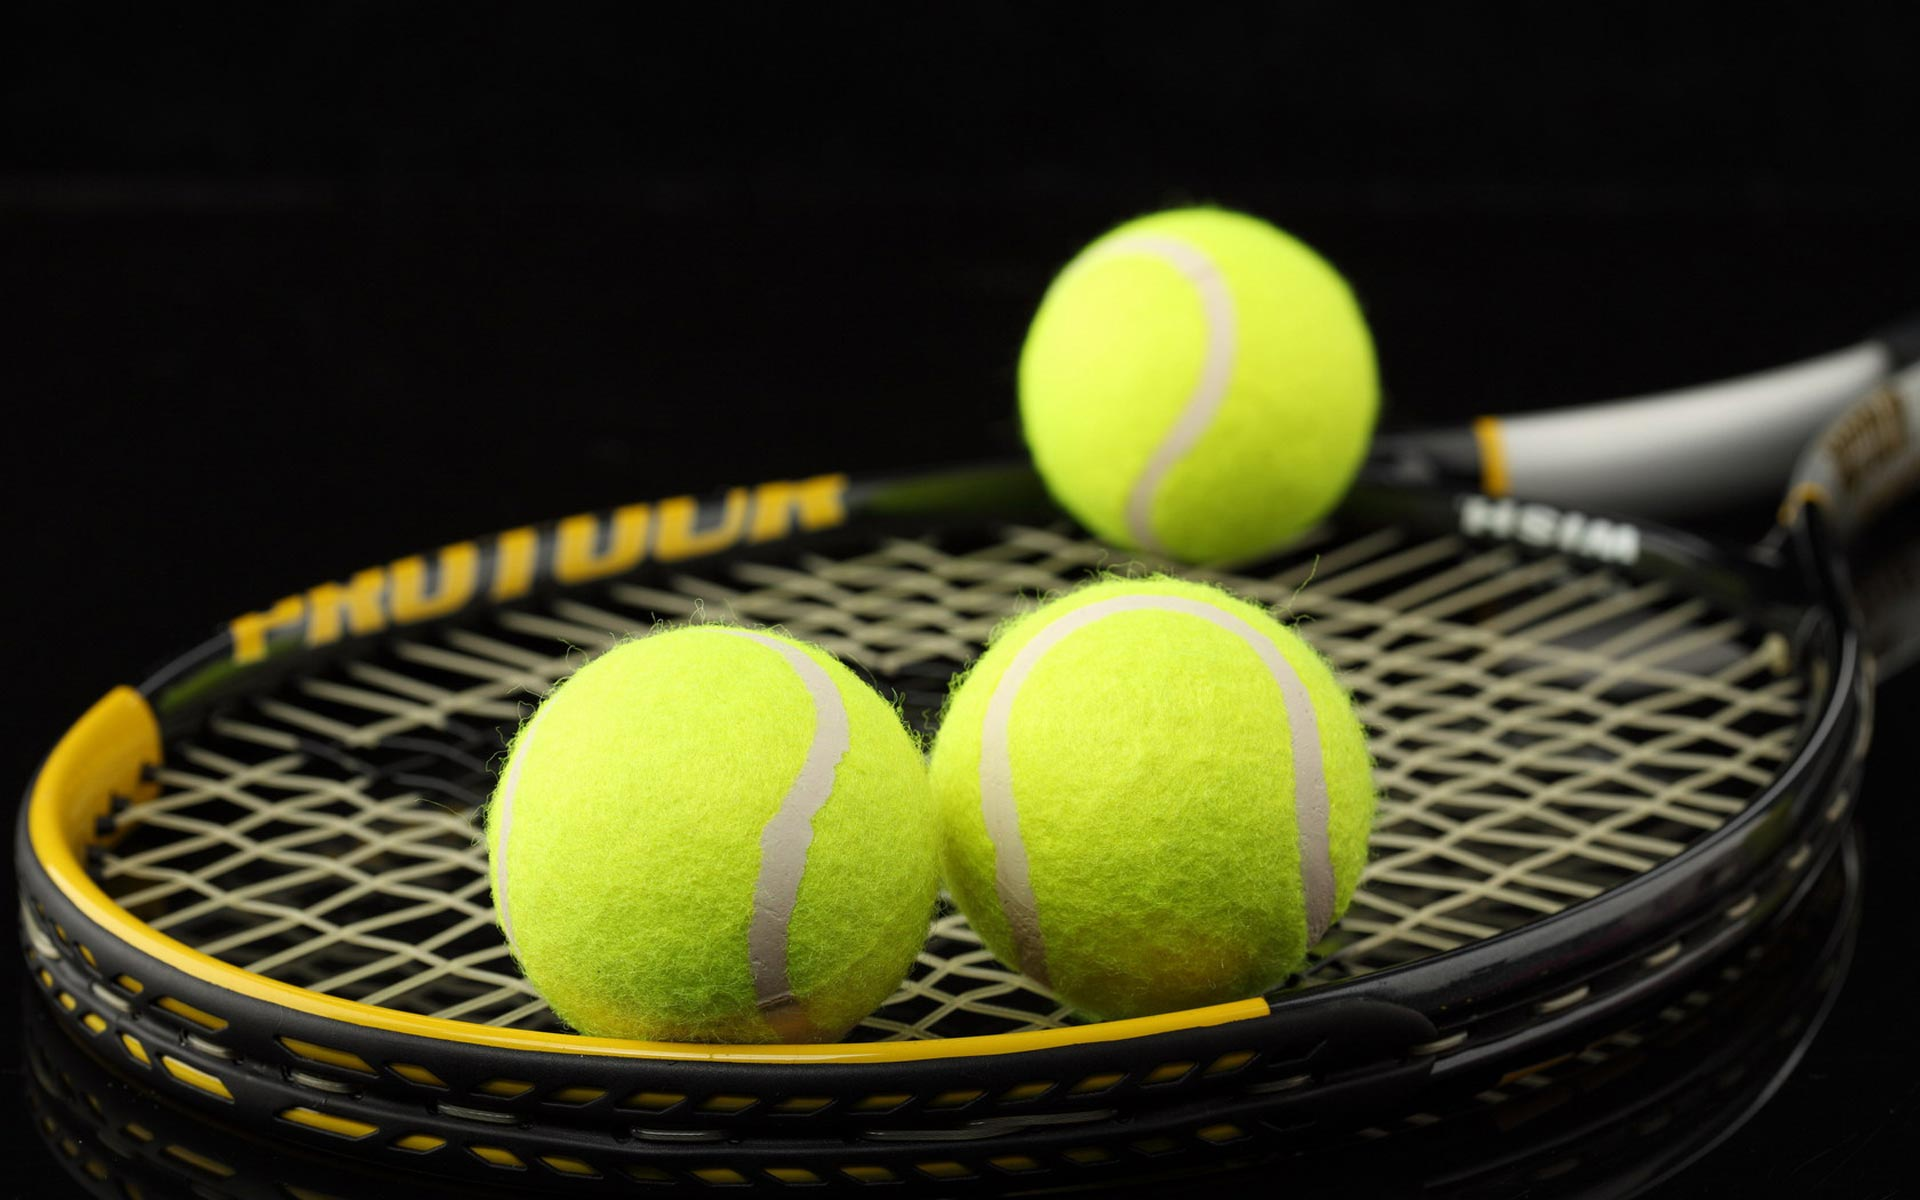 Tennis Hd Wallpapers 2015 High Defination All